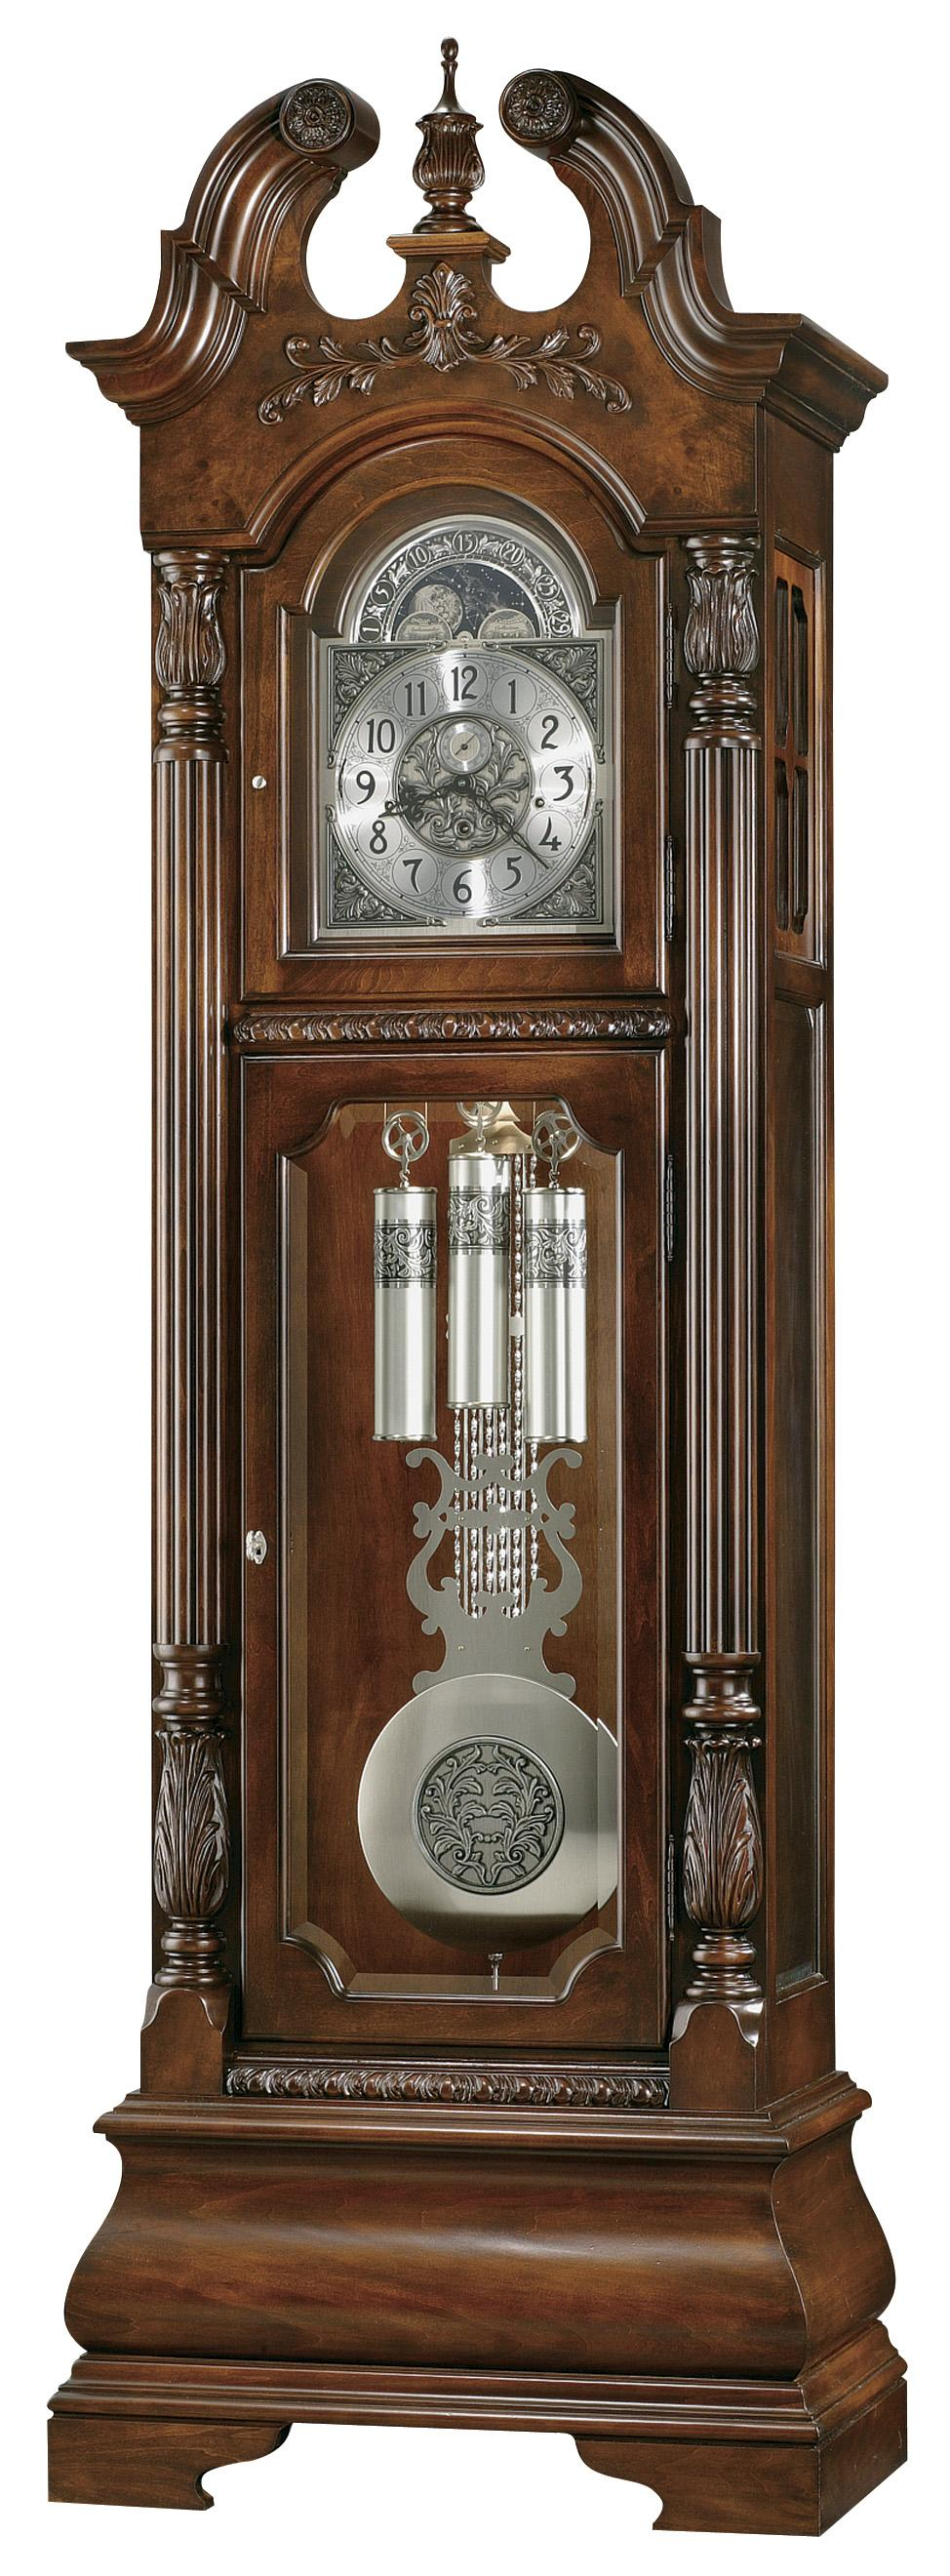 Howard Miller Clocks Stratford Grandfather Clock - Item Number: 611-132